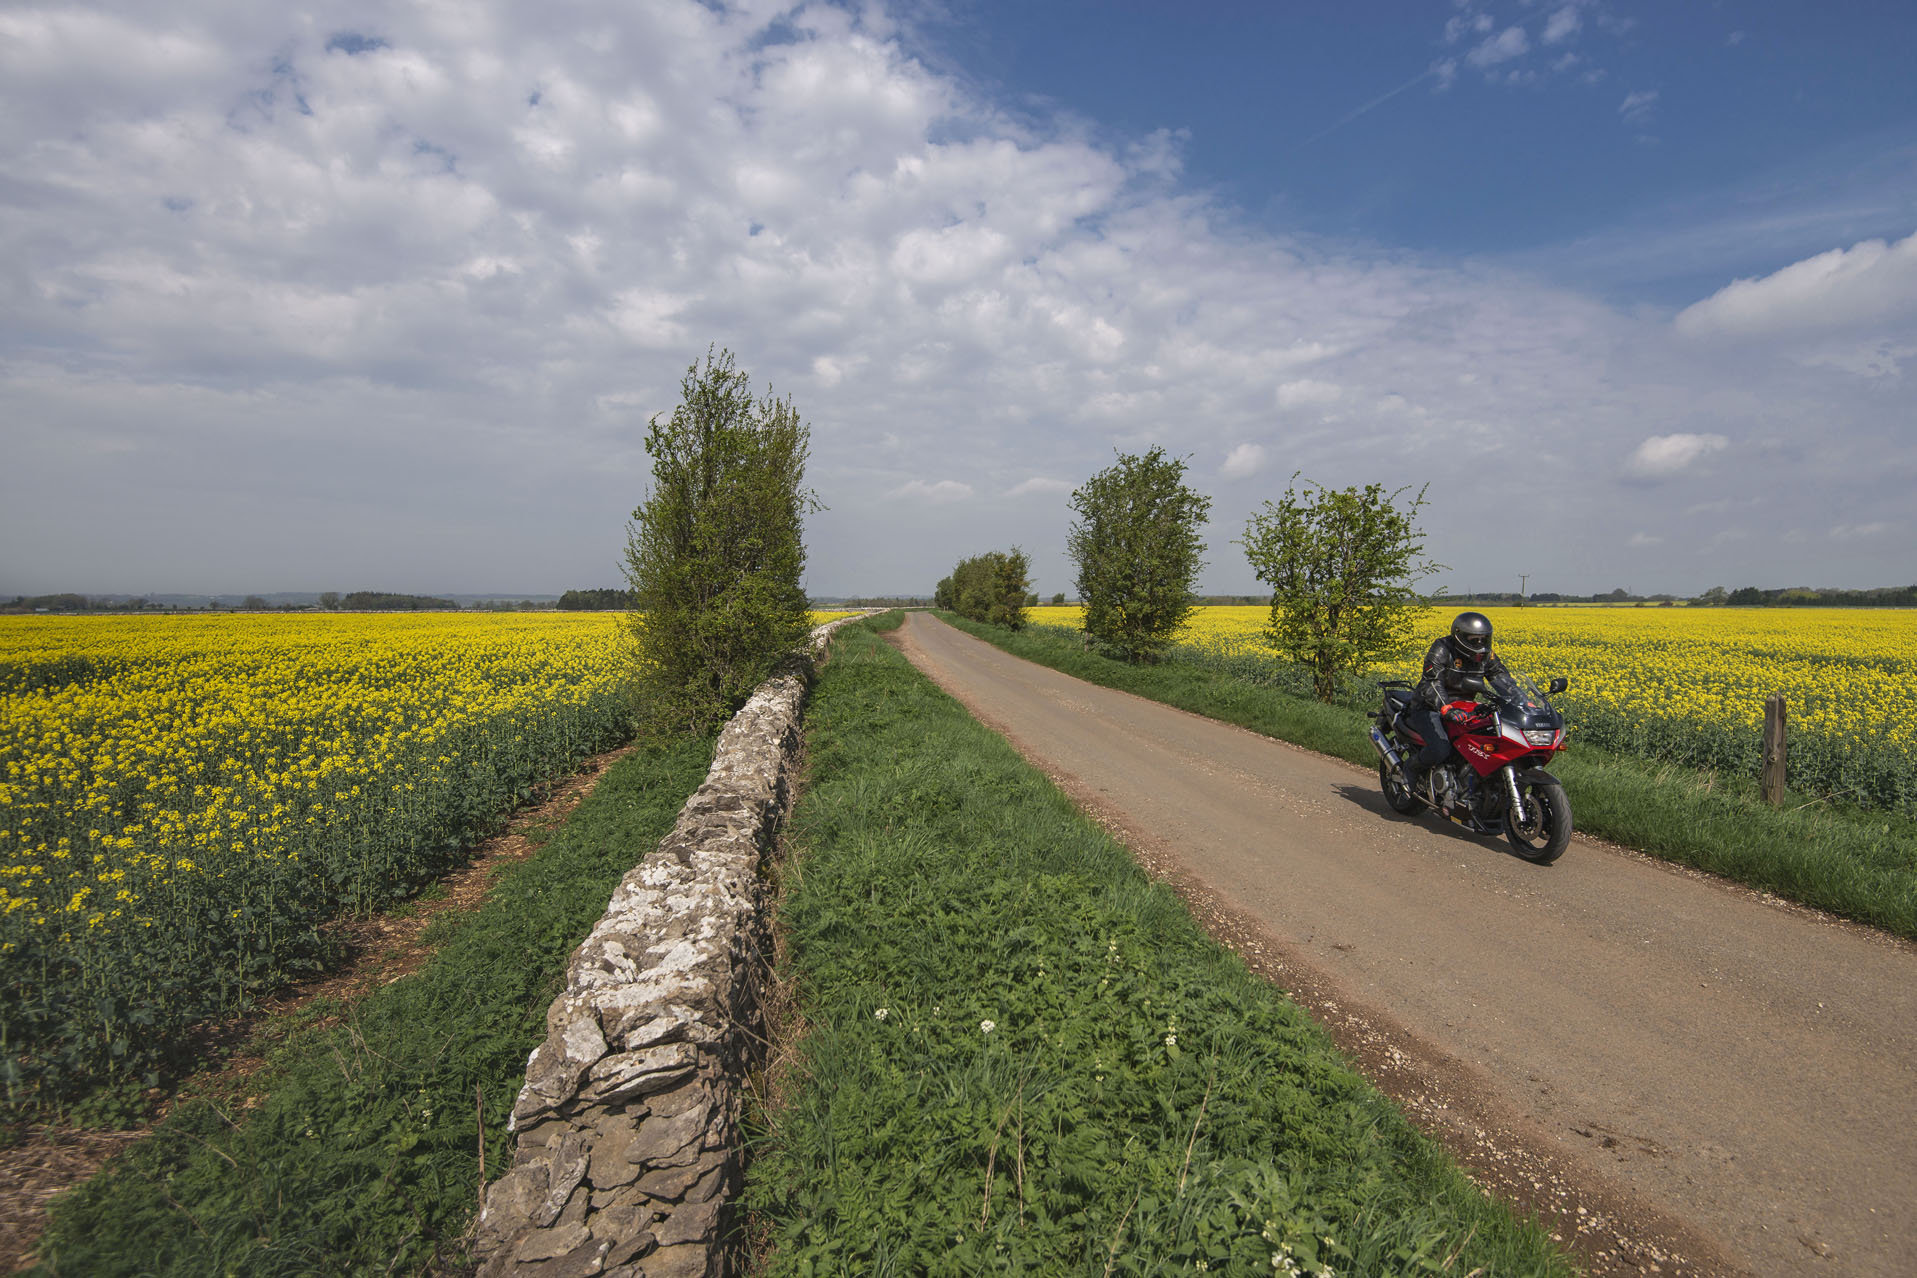 Bike whizzes down country lanes toward the Classic Motor Hub